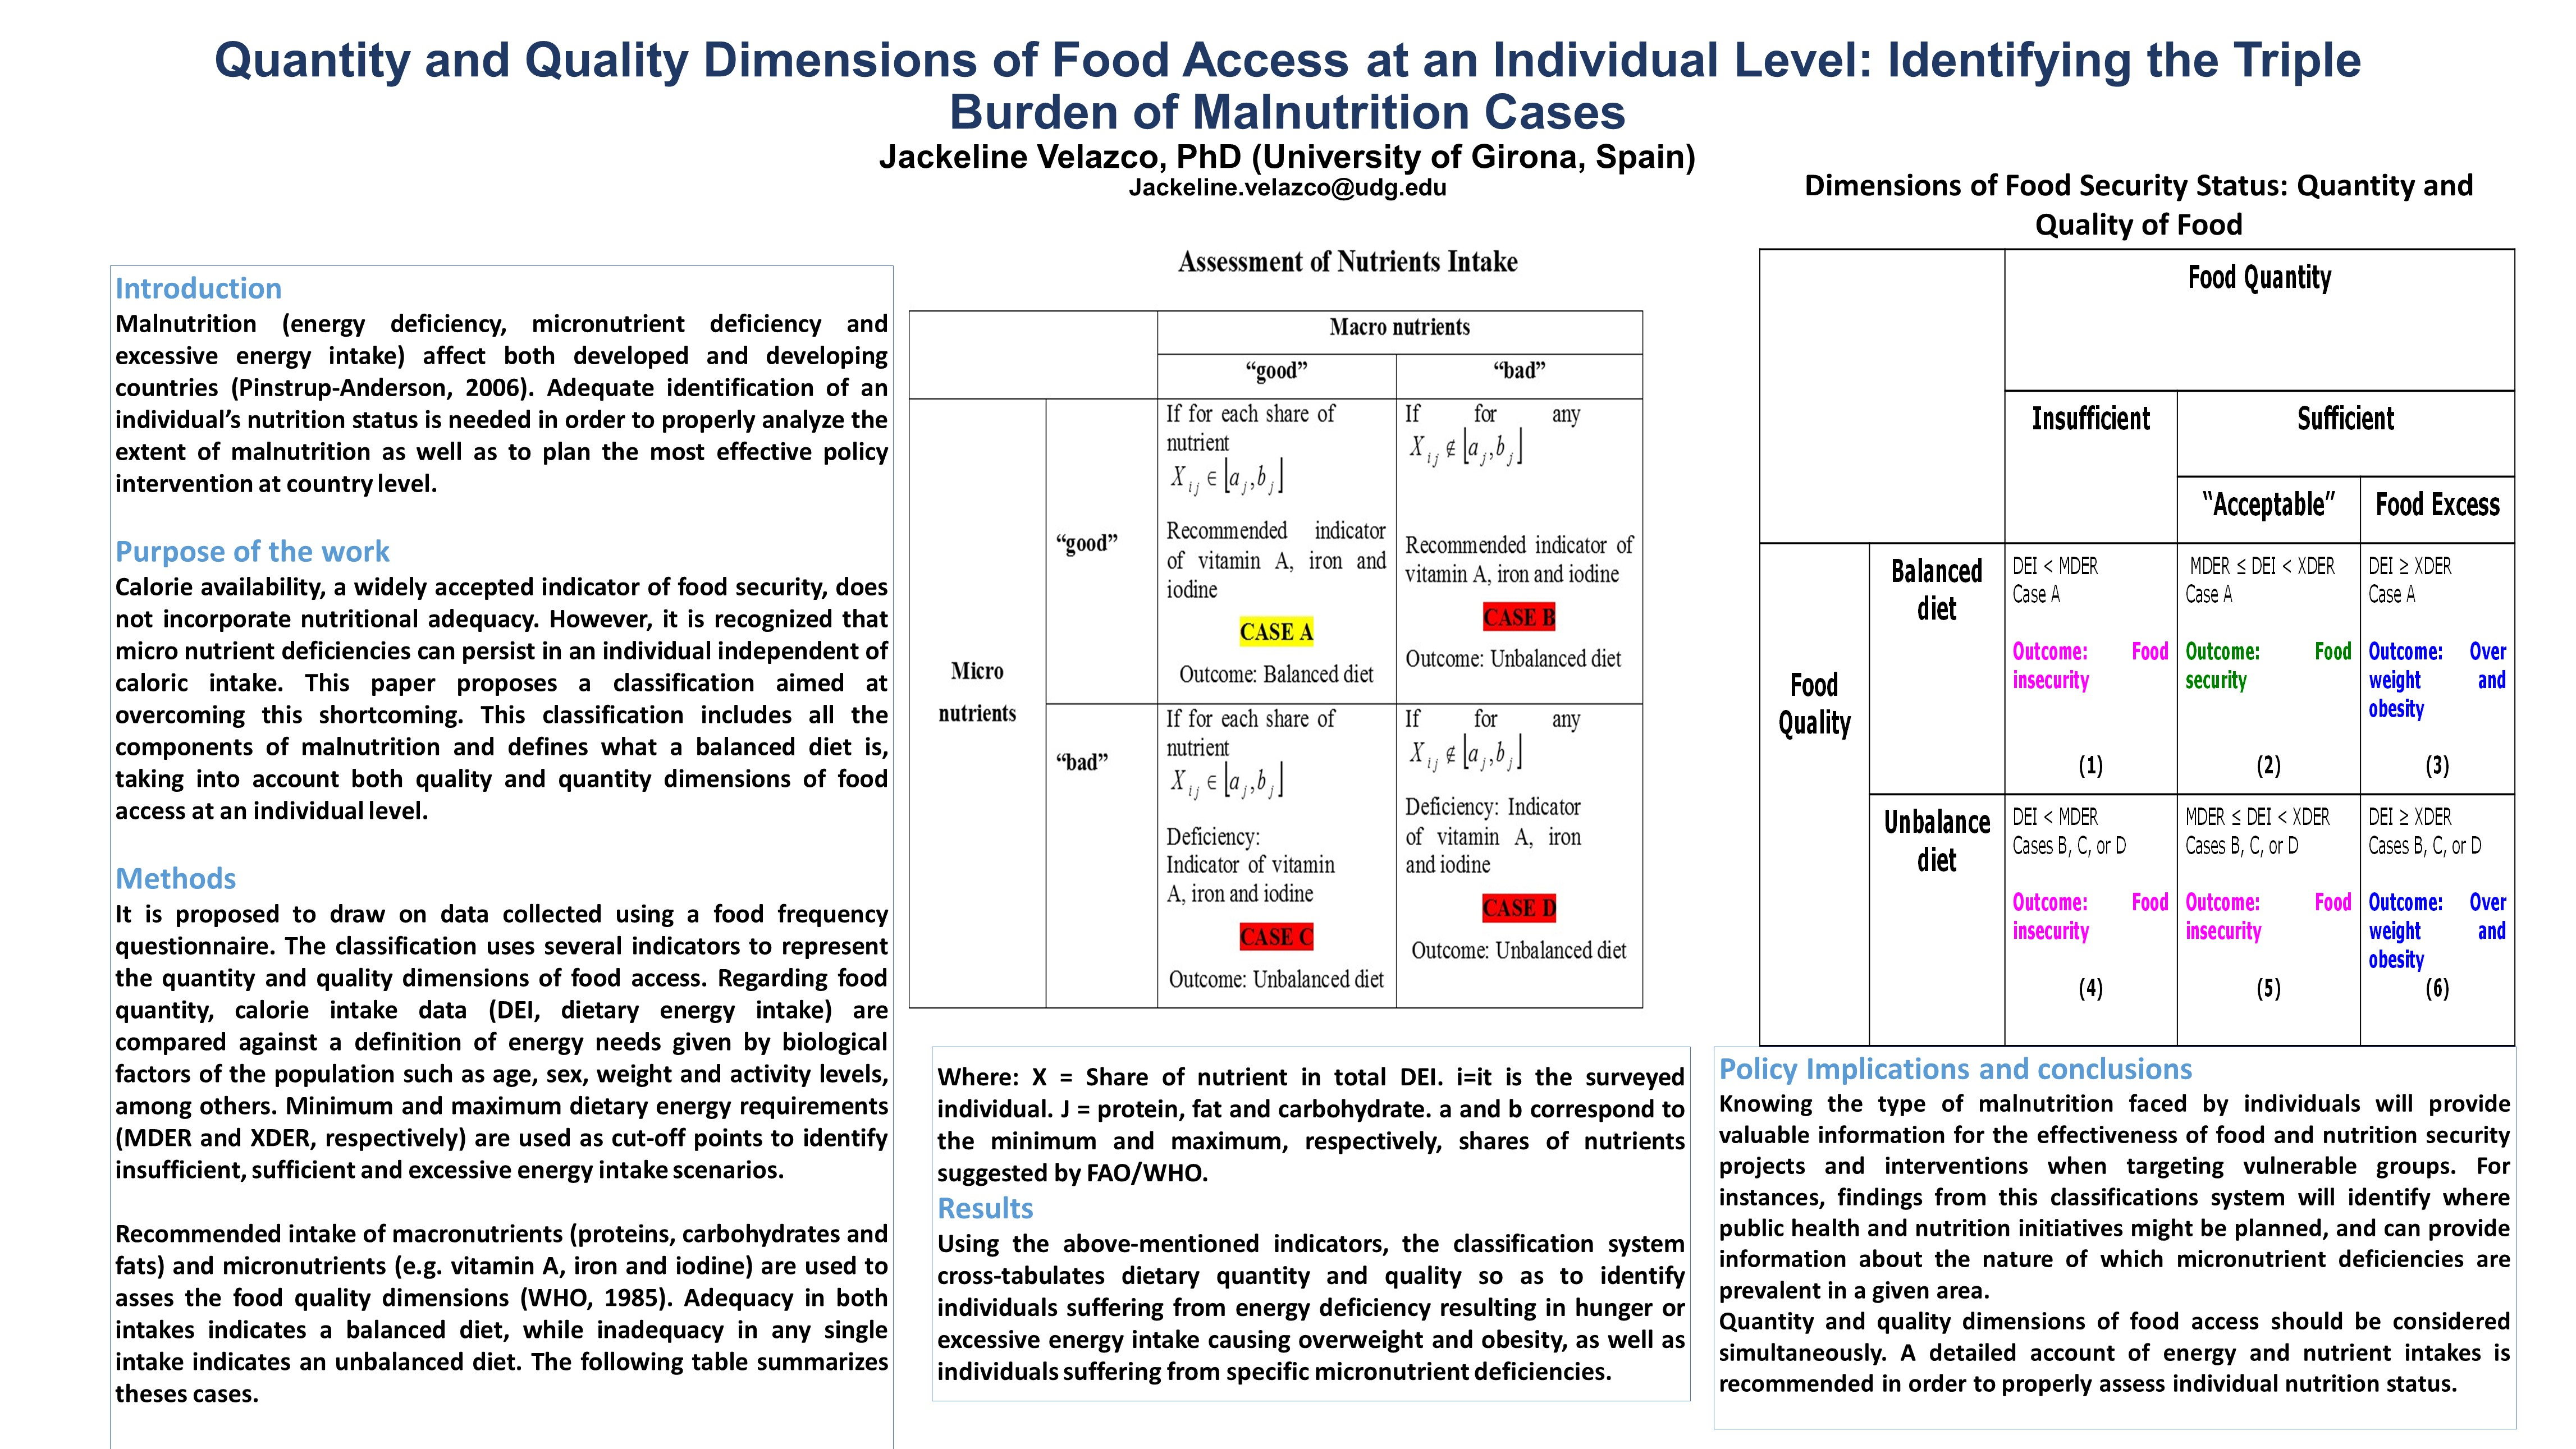 Quantity and Quality Dimensions of Food Access at an Individual Level: Identifying the Triple Burden of Malnutrition Cases